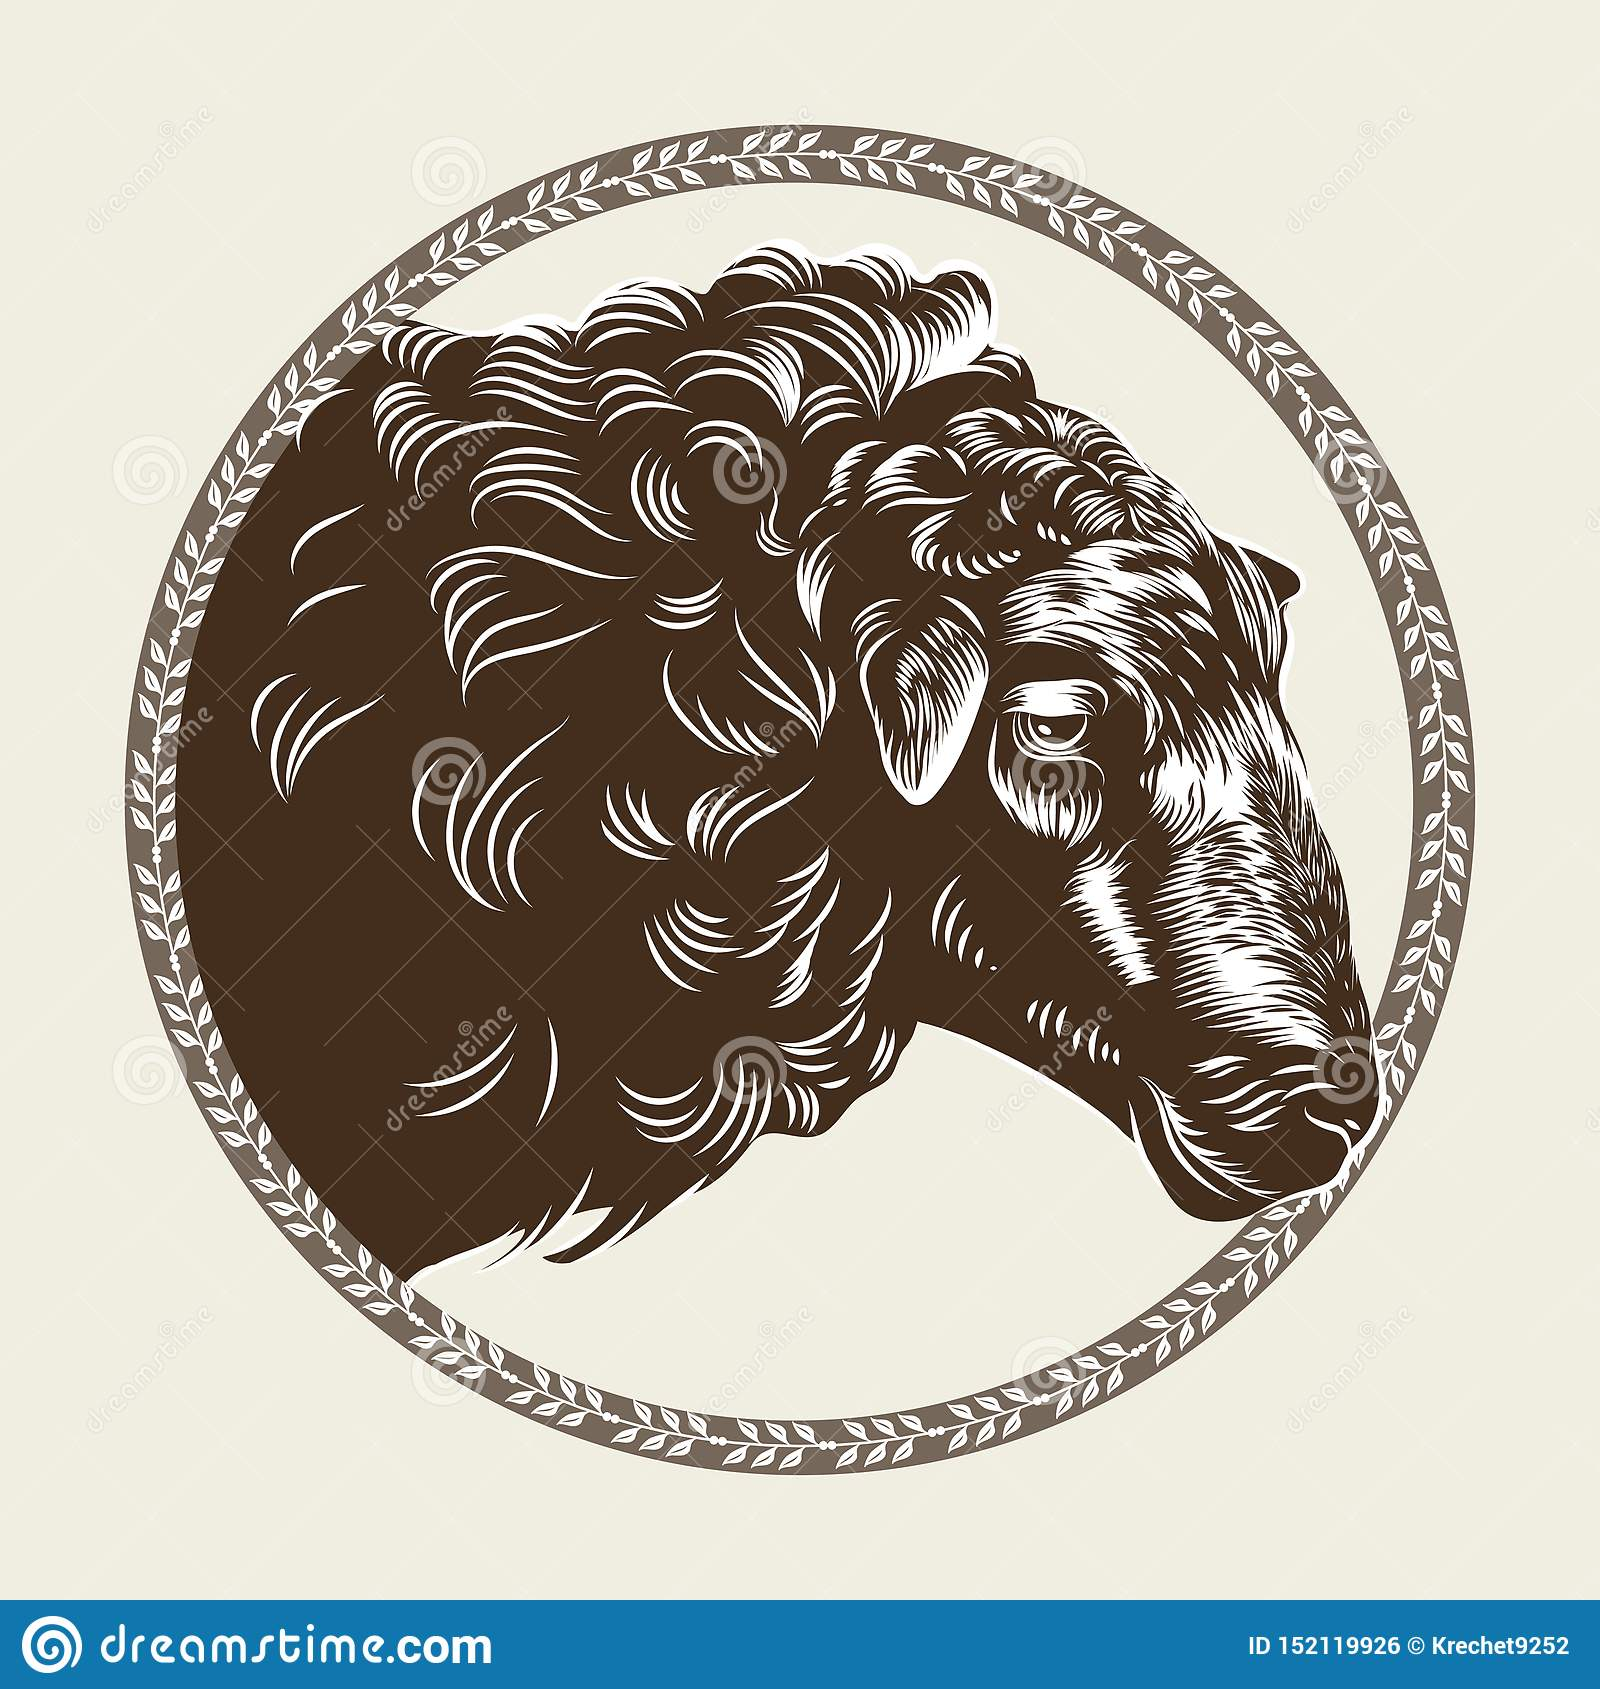 Vector image of a sheep`s head in the style of engraving. Agricultural vintage emblem.